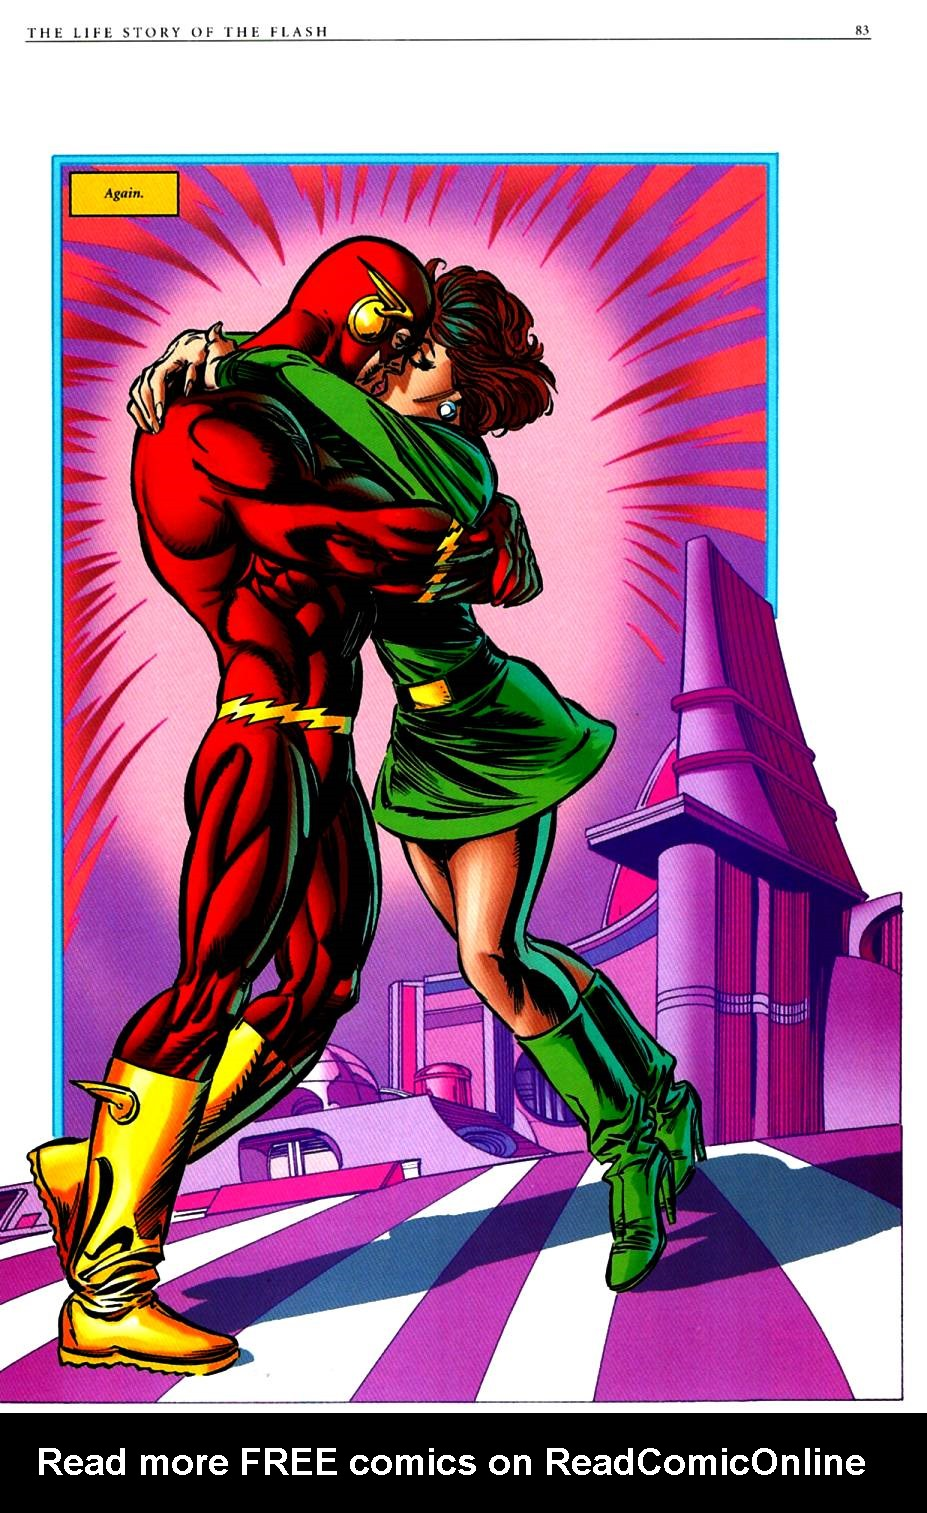 Read online The Life Story of the Flash comic -  Issue # Full - 85